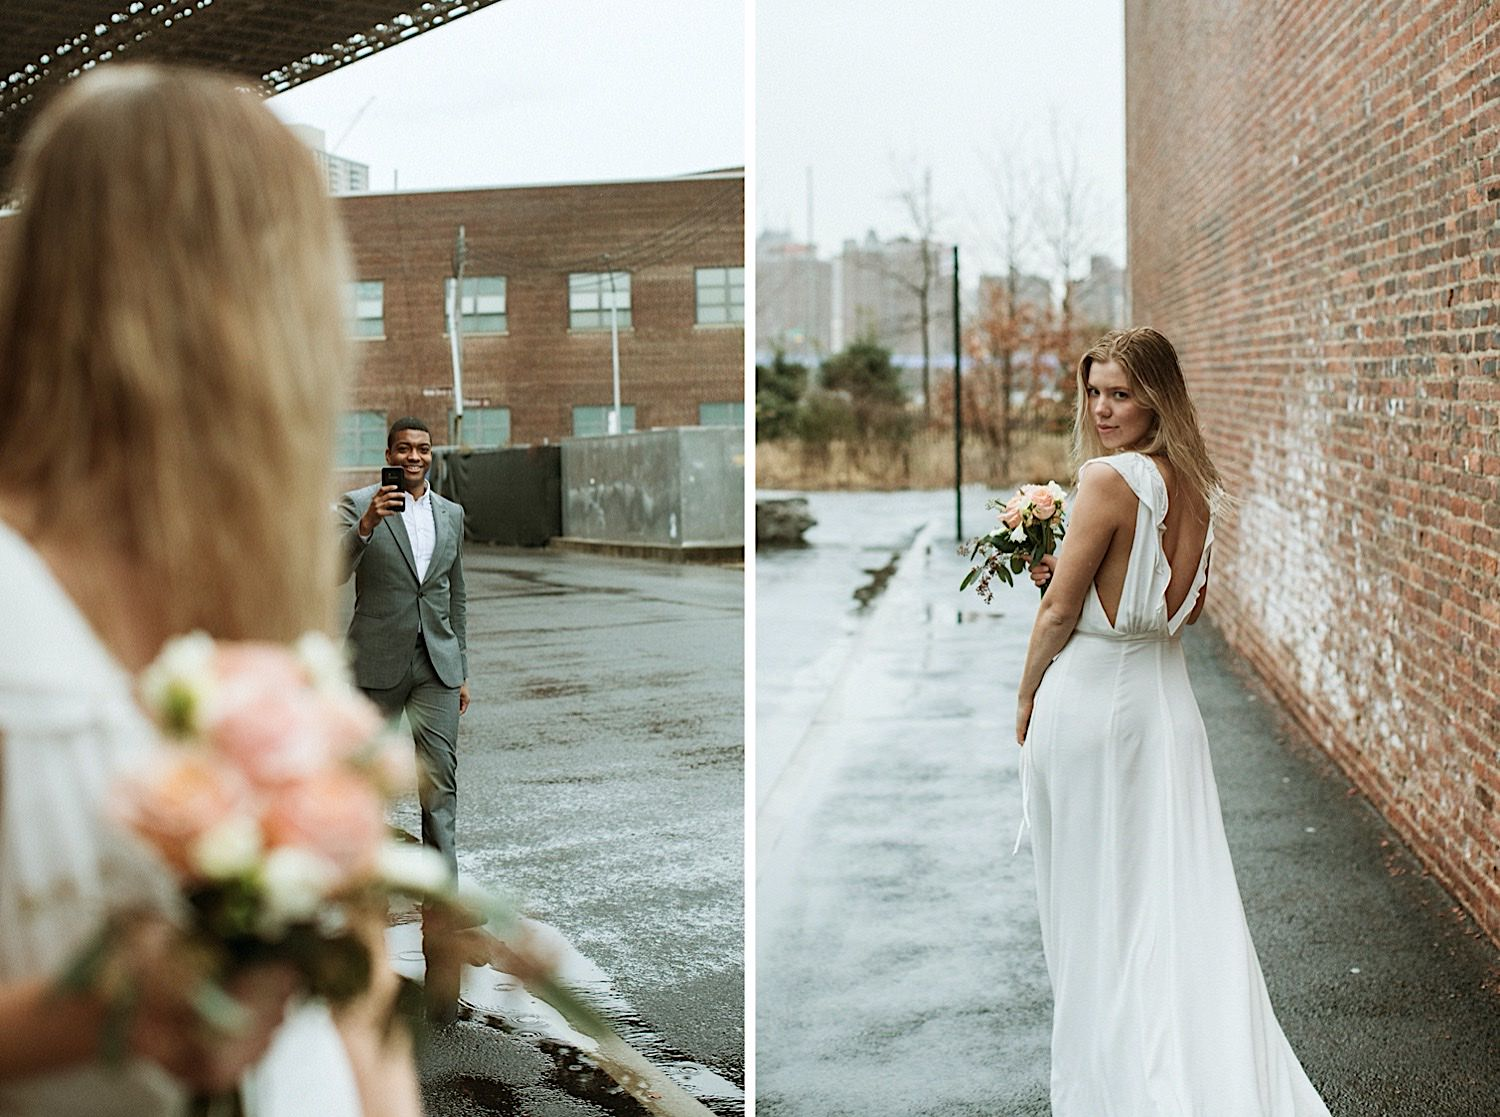 DUMBO Wedding Photography Candids - Groom takes a photo of bride with his cell phone. Bride looks back smiling in a sleeveless dress. Ground is wet with rain